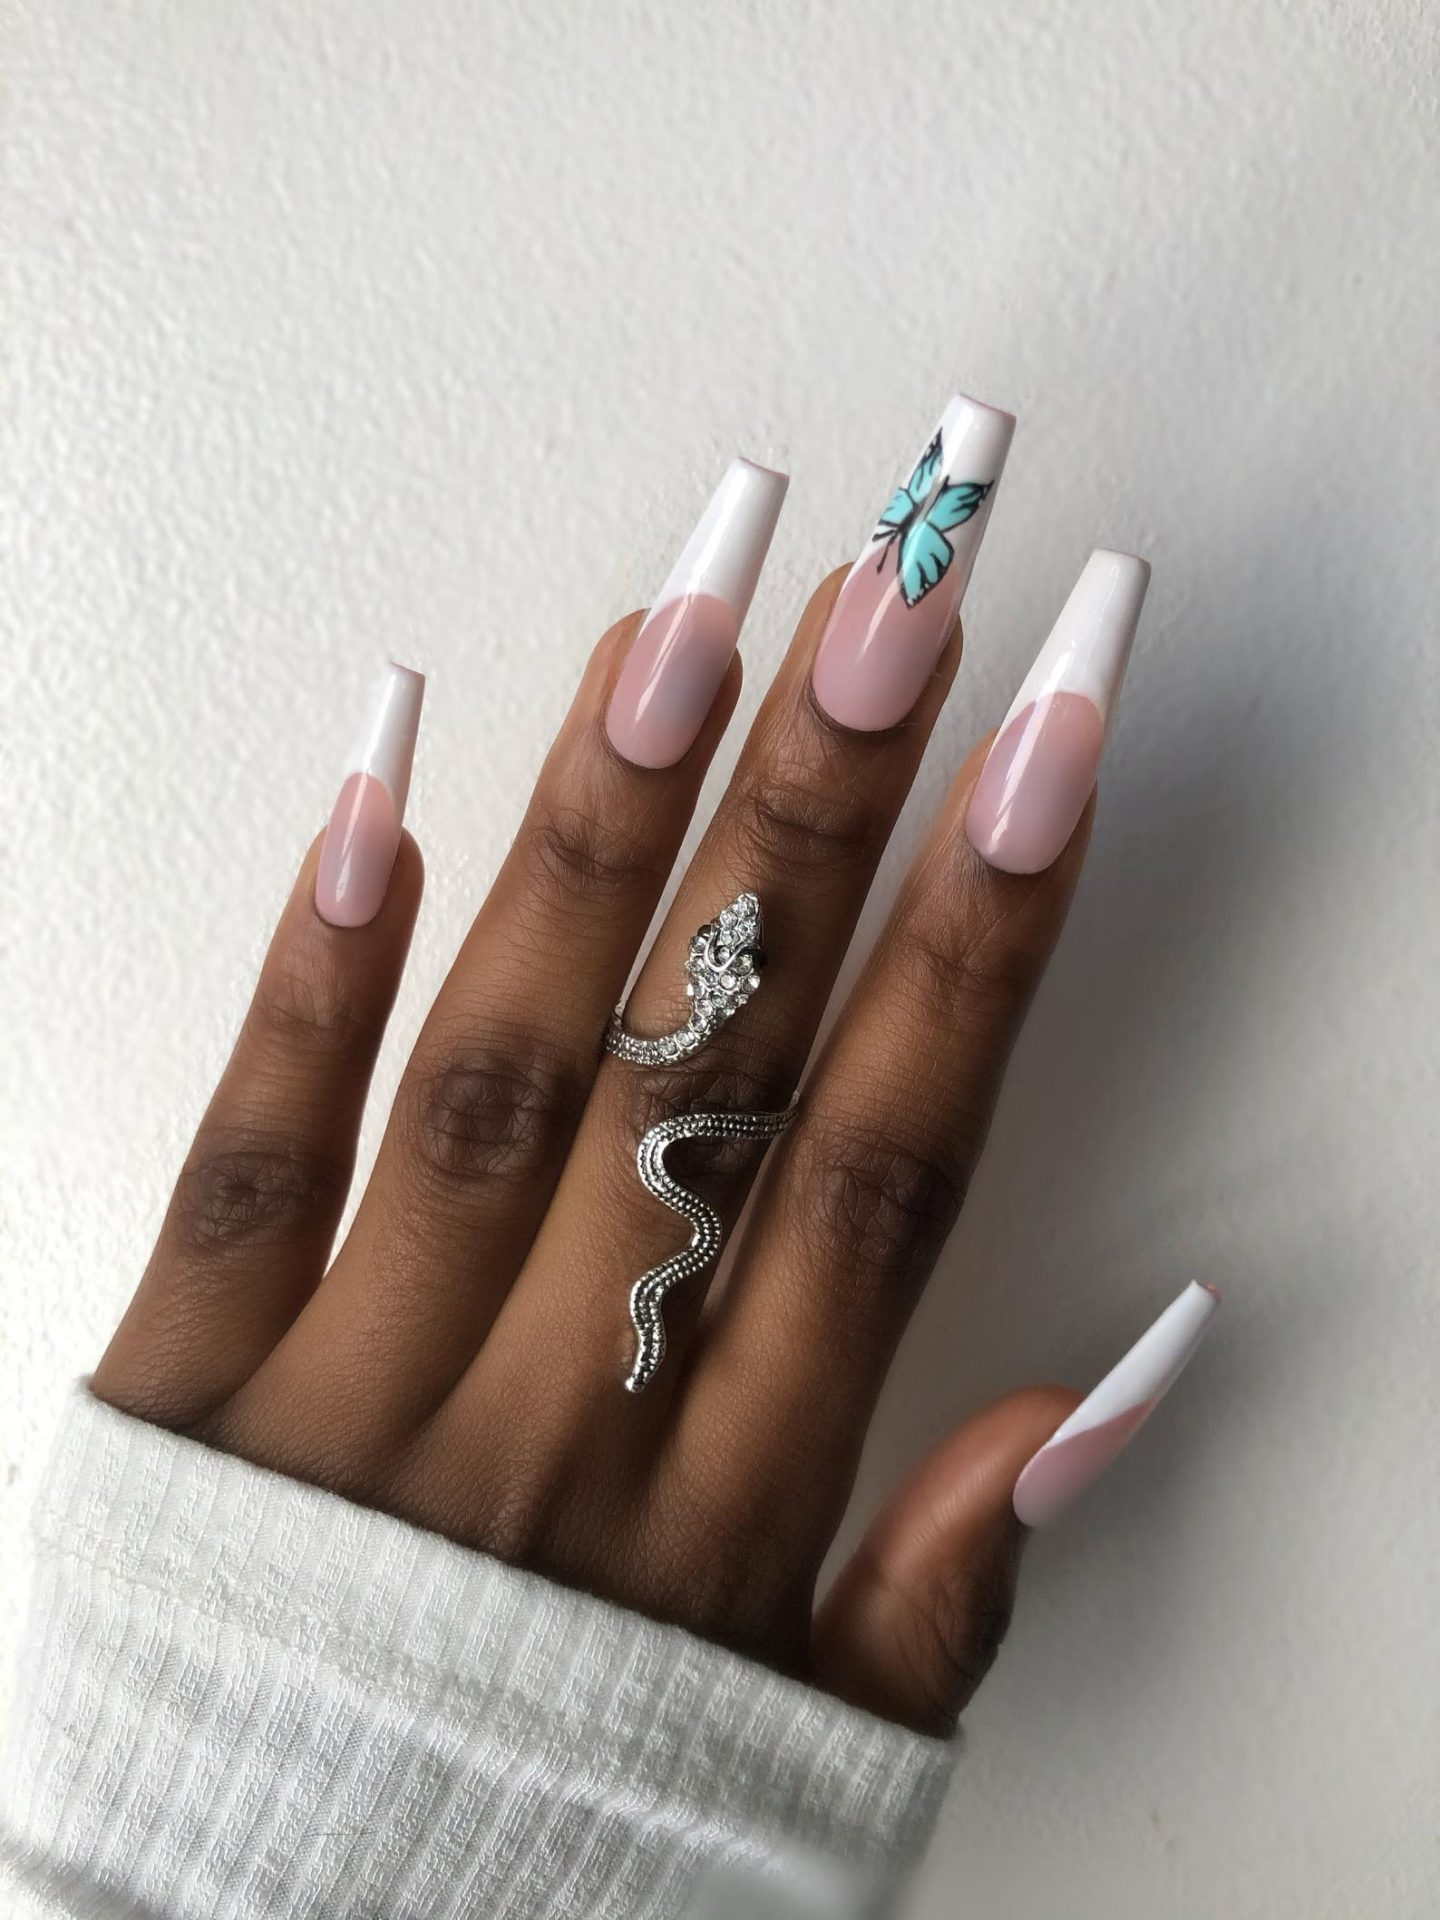 Acrylic coffin French tip nails with butterfly nail art